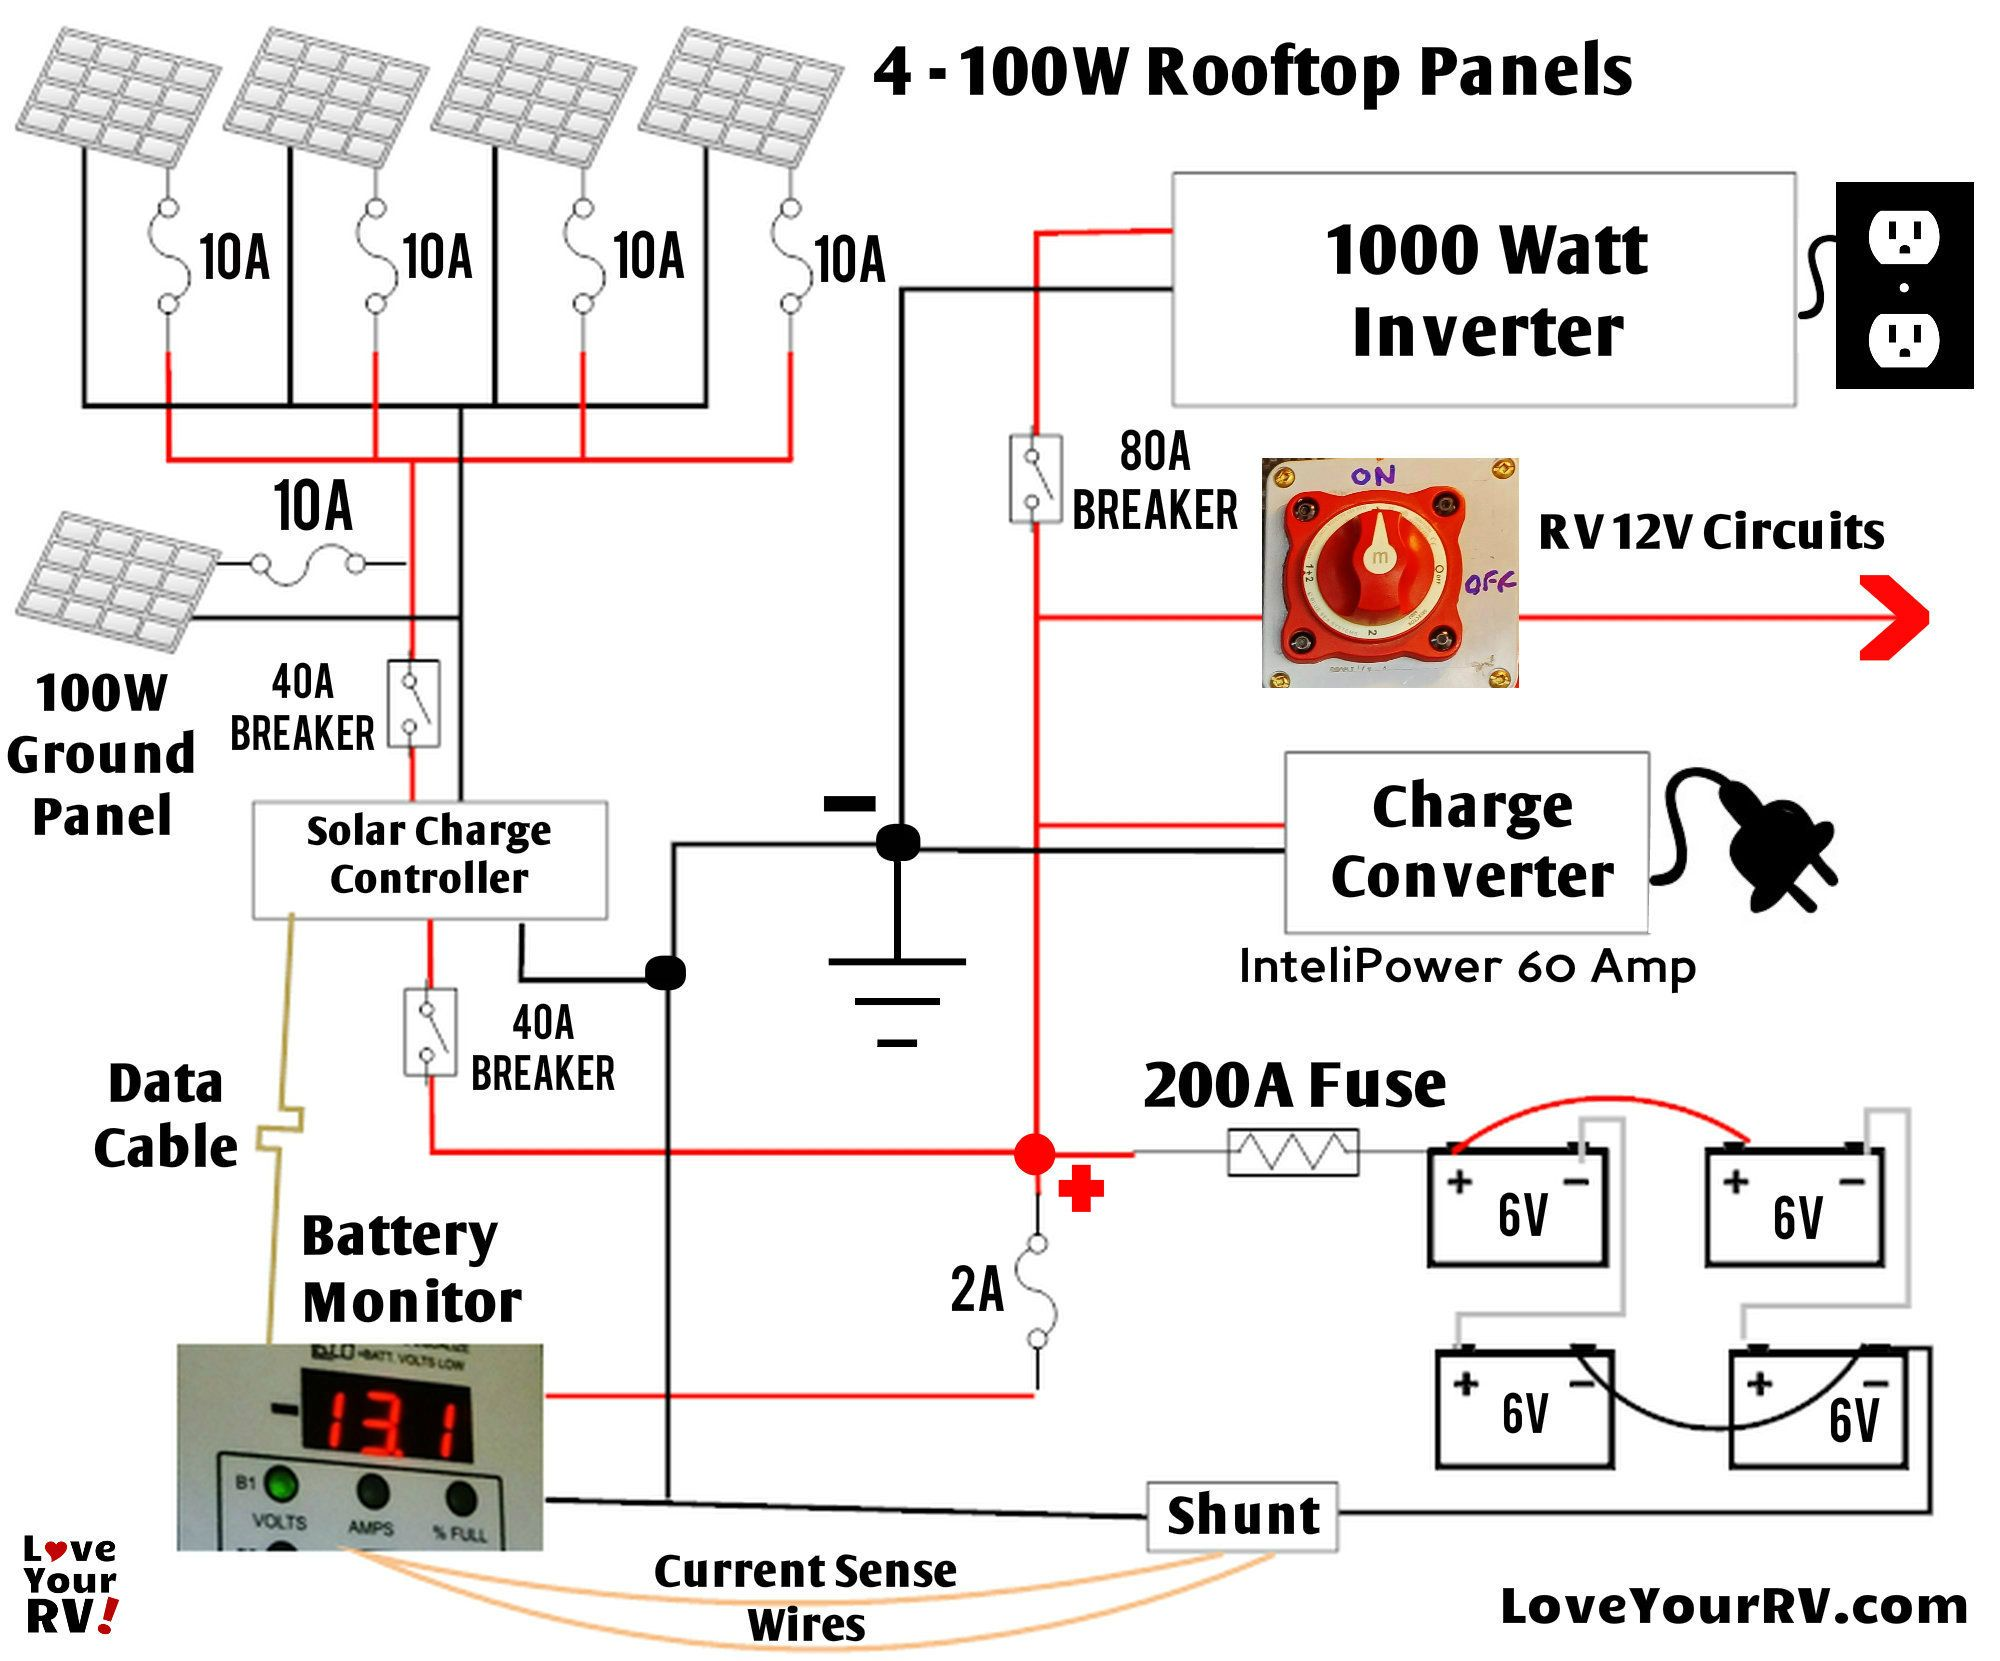 Schematic diagram of our RV solar power system - http://www.loveyourrv